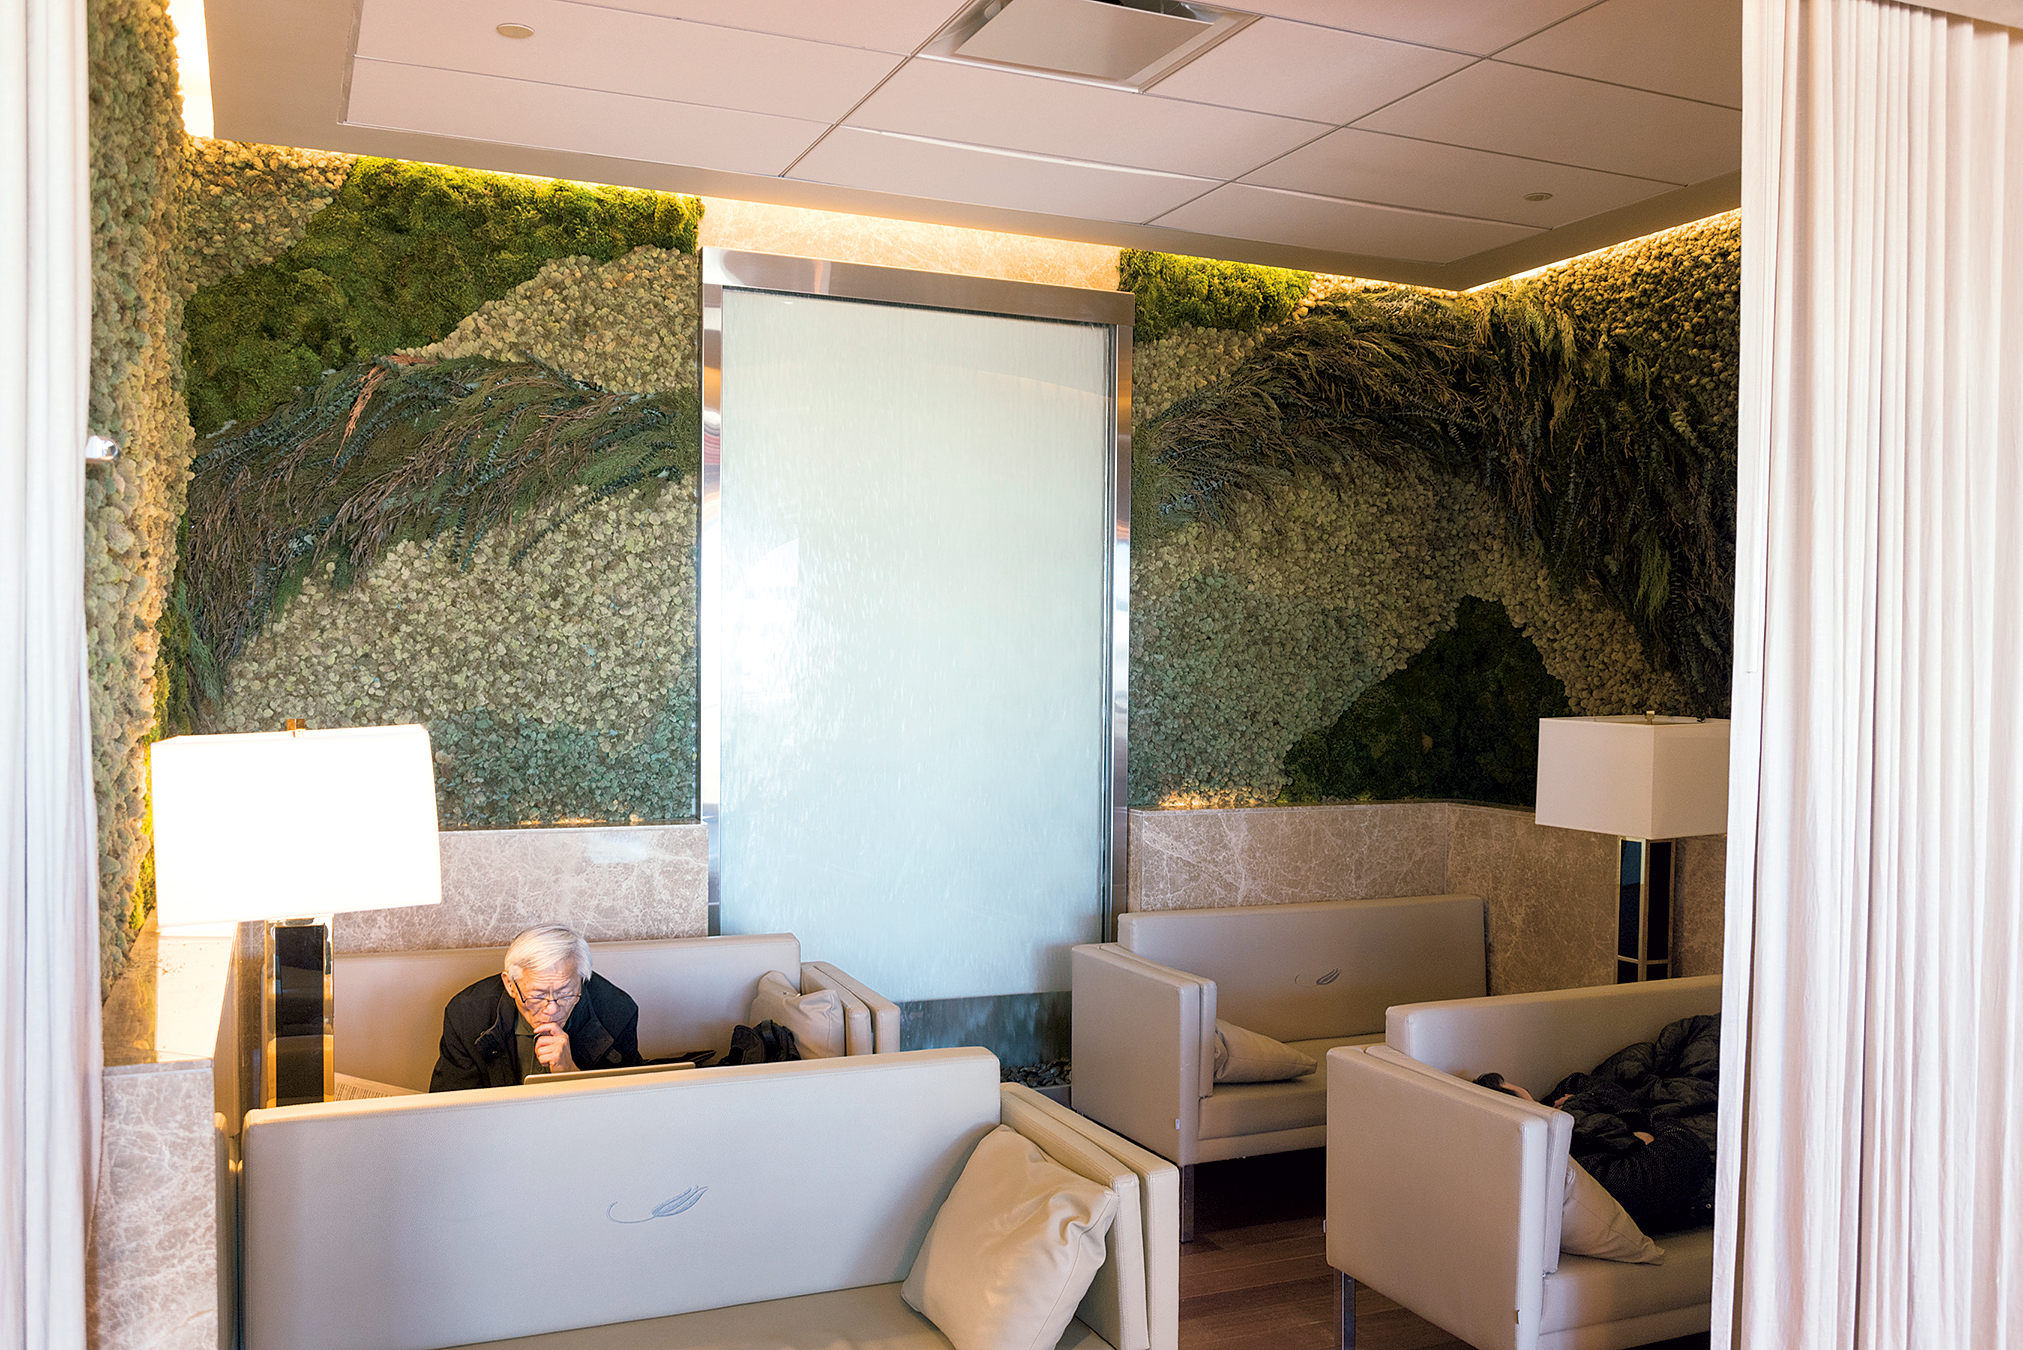 The Turkish Airlines lounge at Dulles features a moss wall and a waterfall, sushi at the buffet, and freshly made baklava. Photograph by Lauren Bulbin.